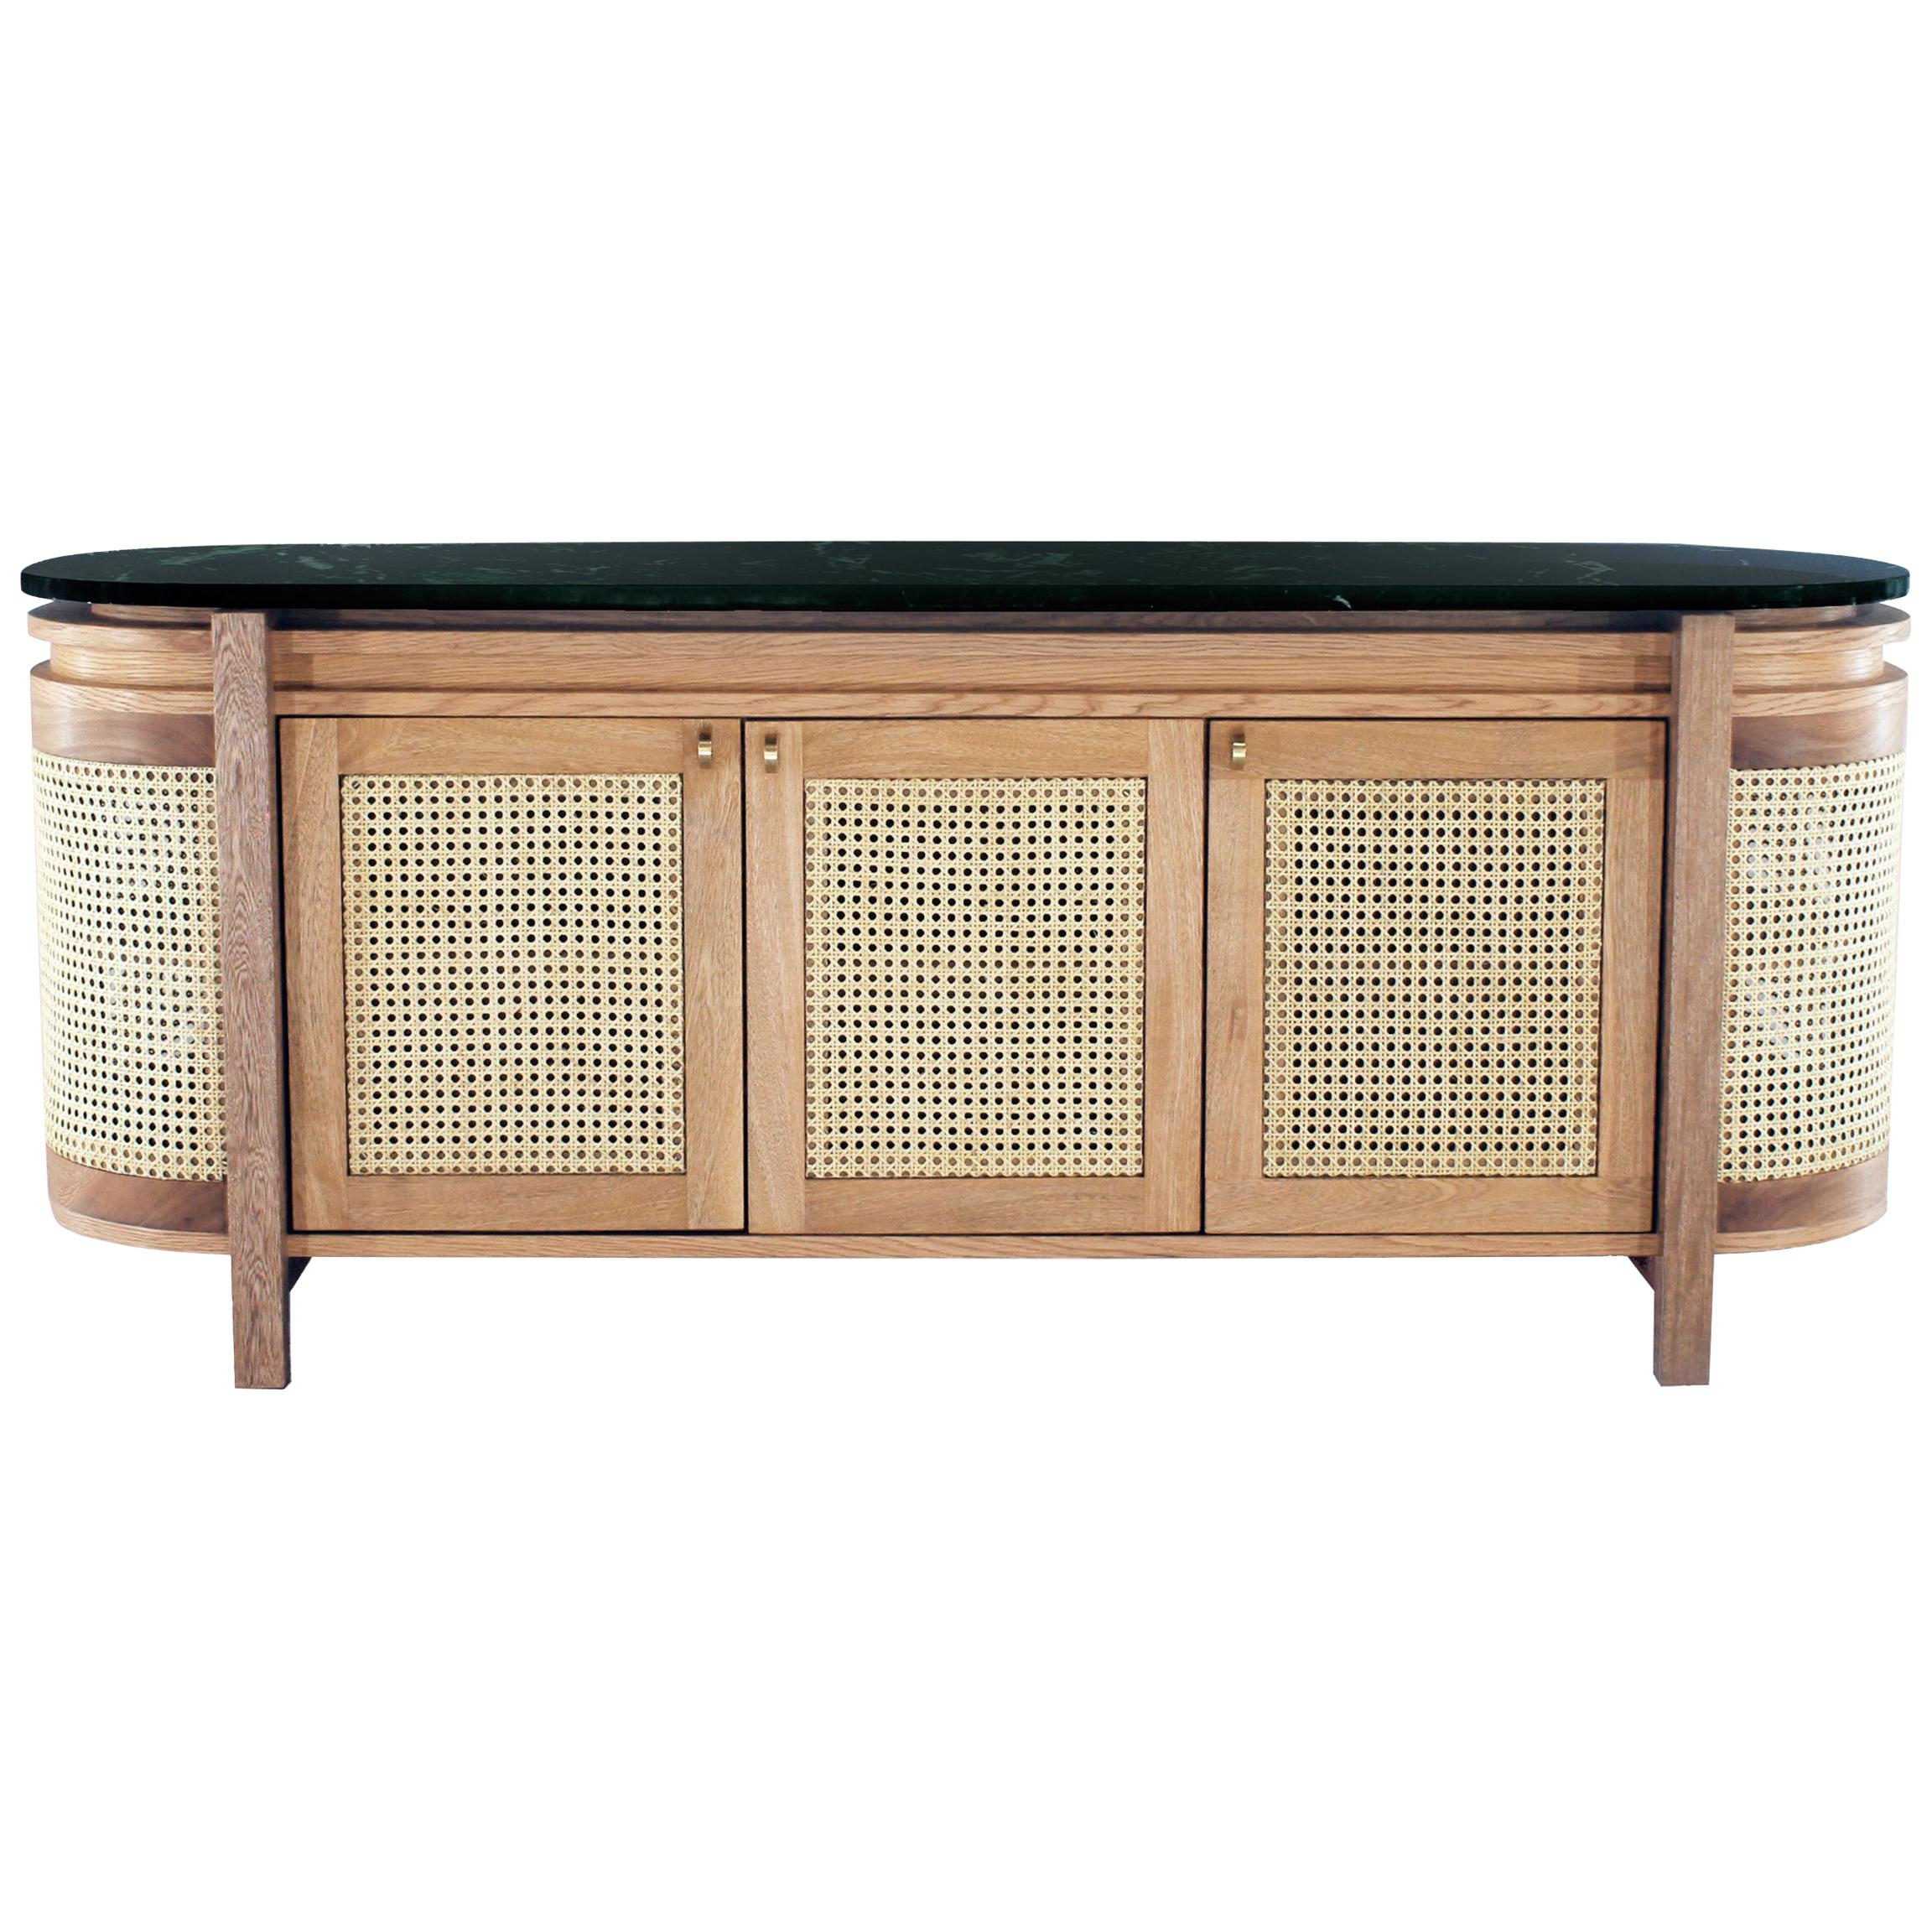 Mexico Sideboard, Wicker and white Oak with Marble, Contemporary Mexican Design